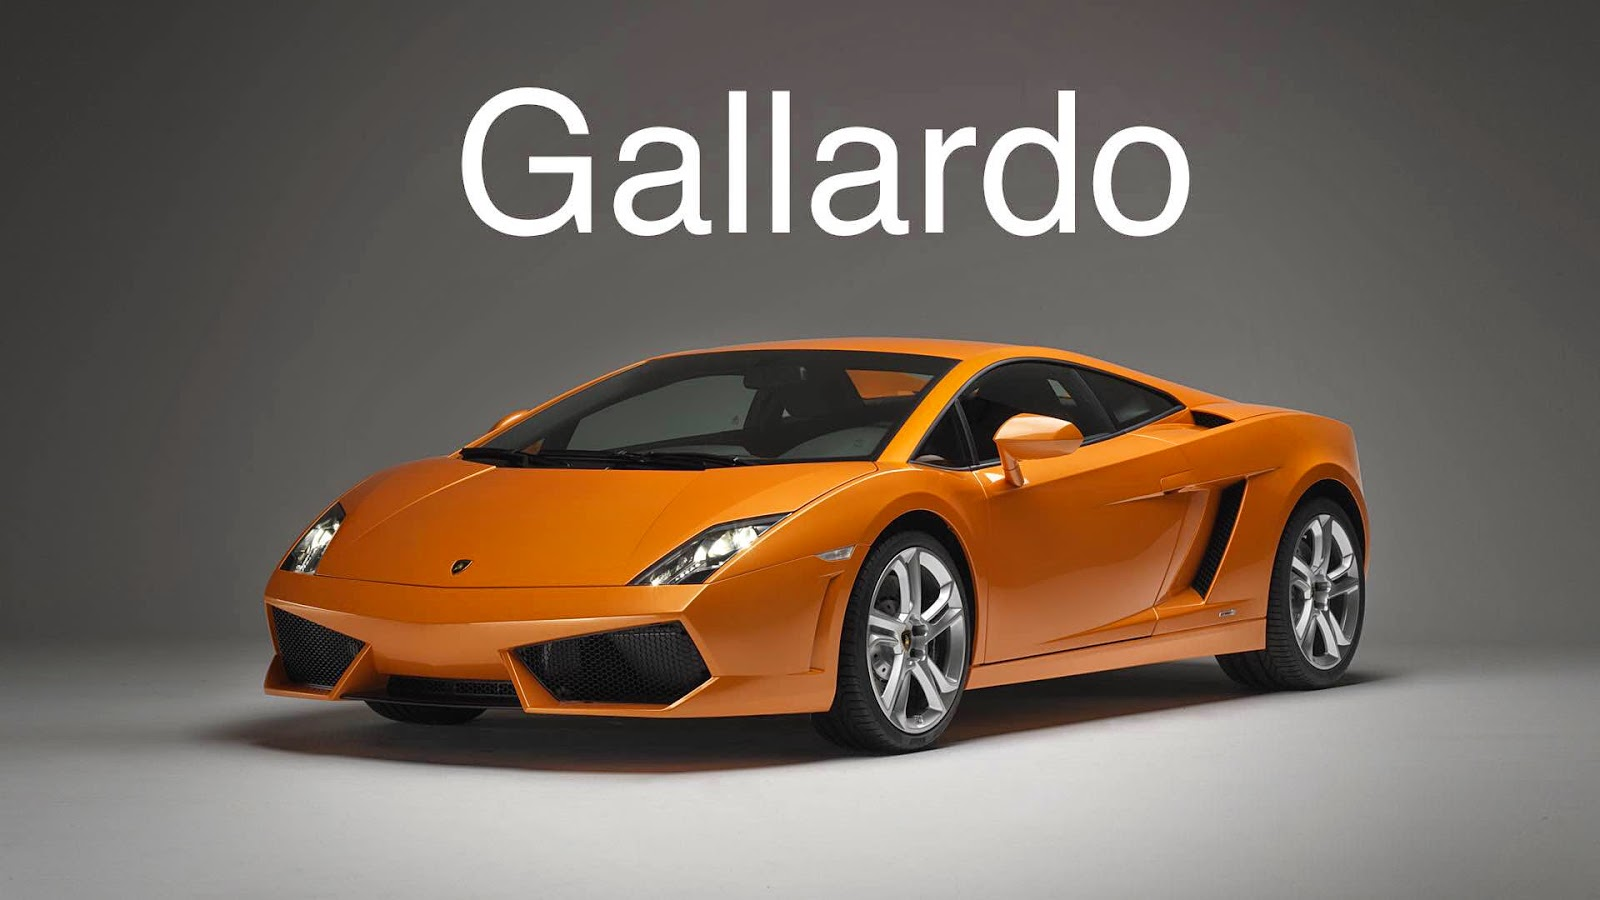 Huracan vs Gallardo